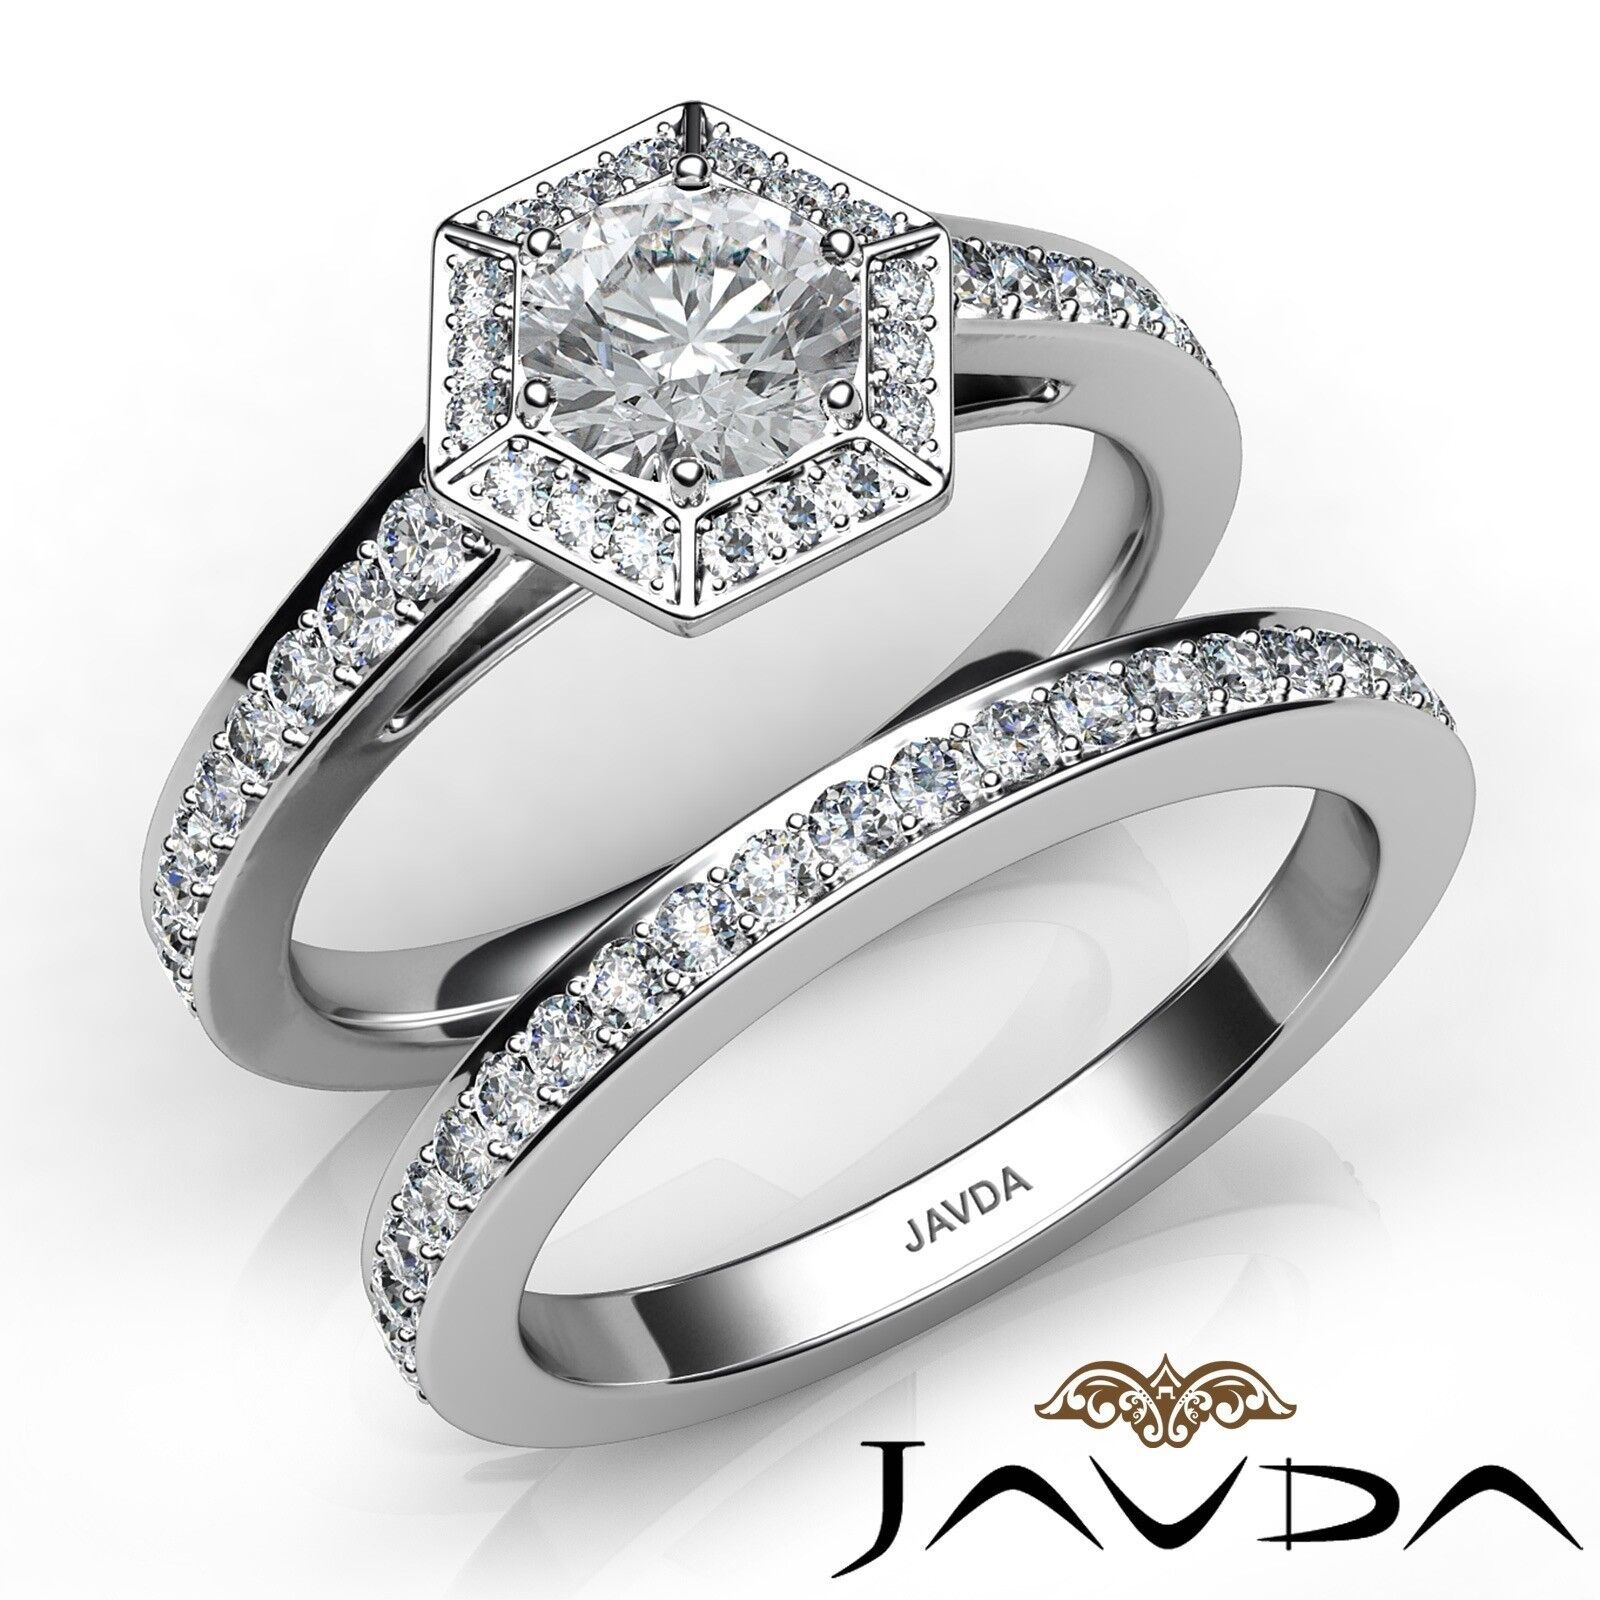 1.66ctw Hexagon Halo Bridal Set Round Diamond Engagement Ring GIA H-VVS1 W Gold